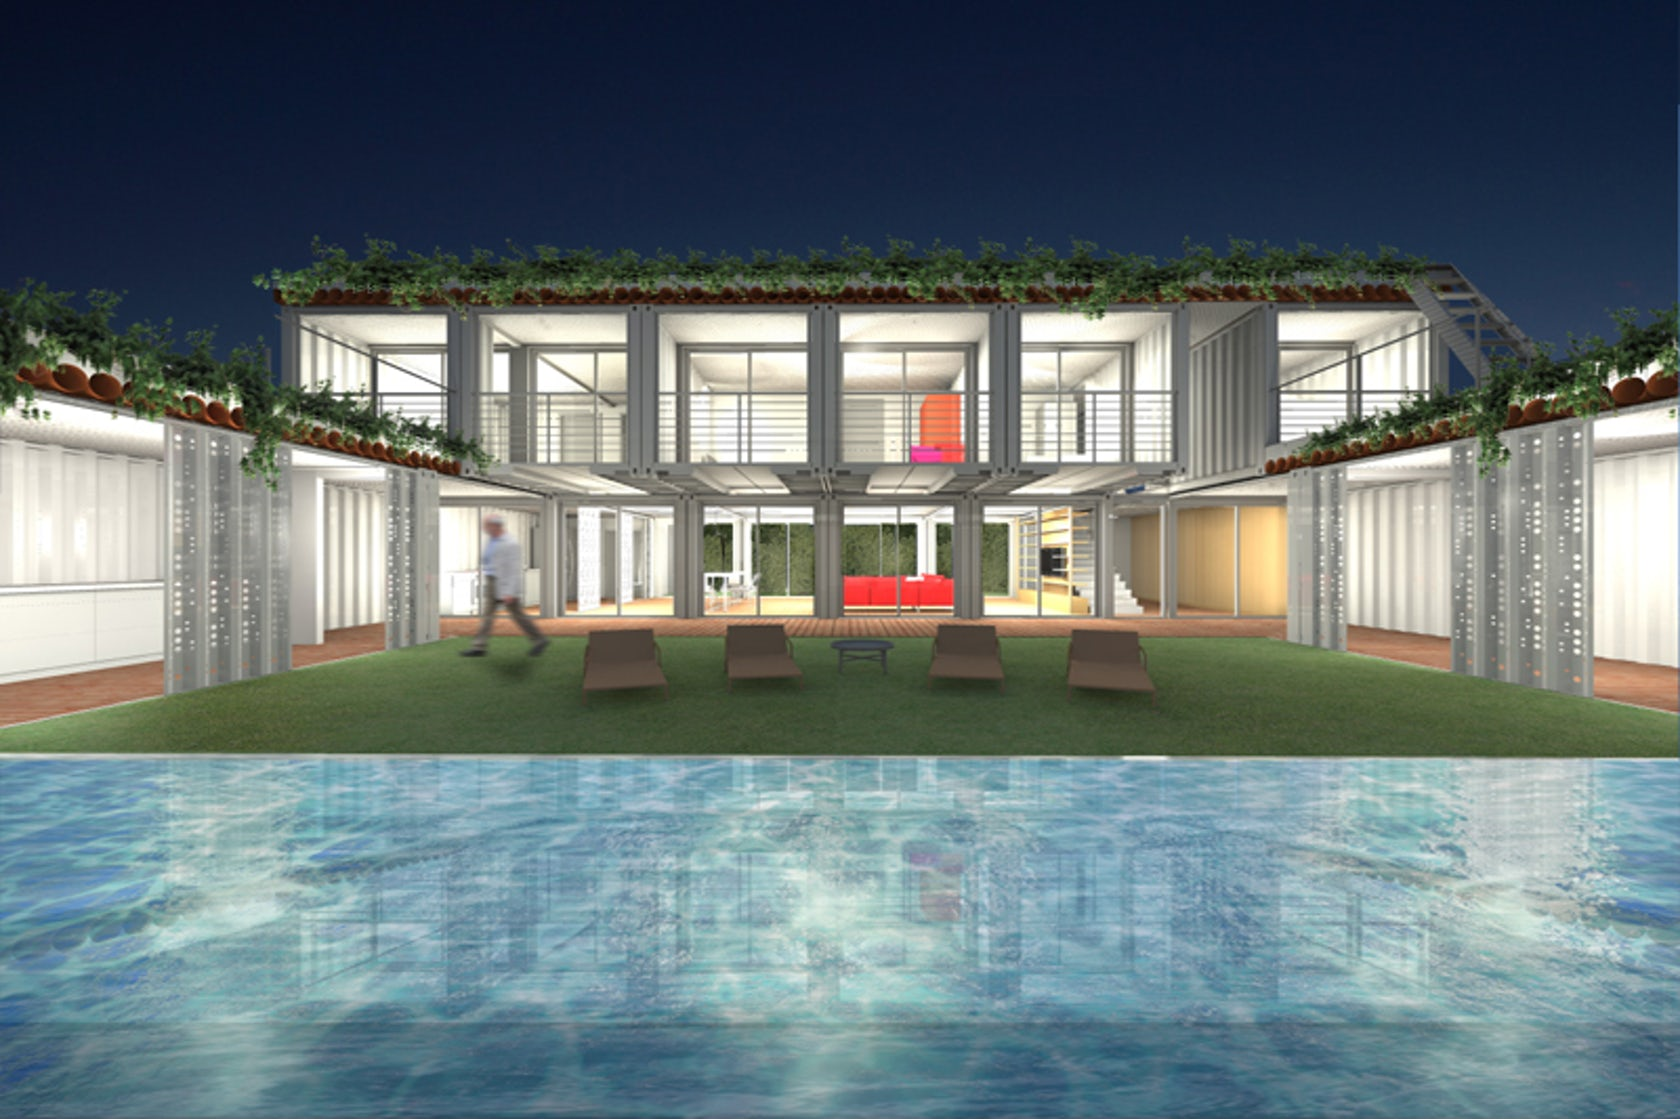 Container house architizer - Container homes miami ...